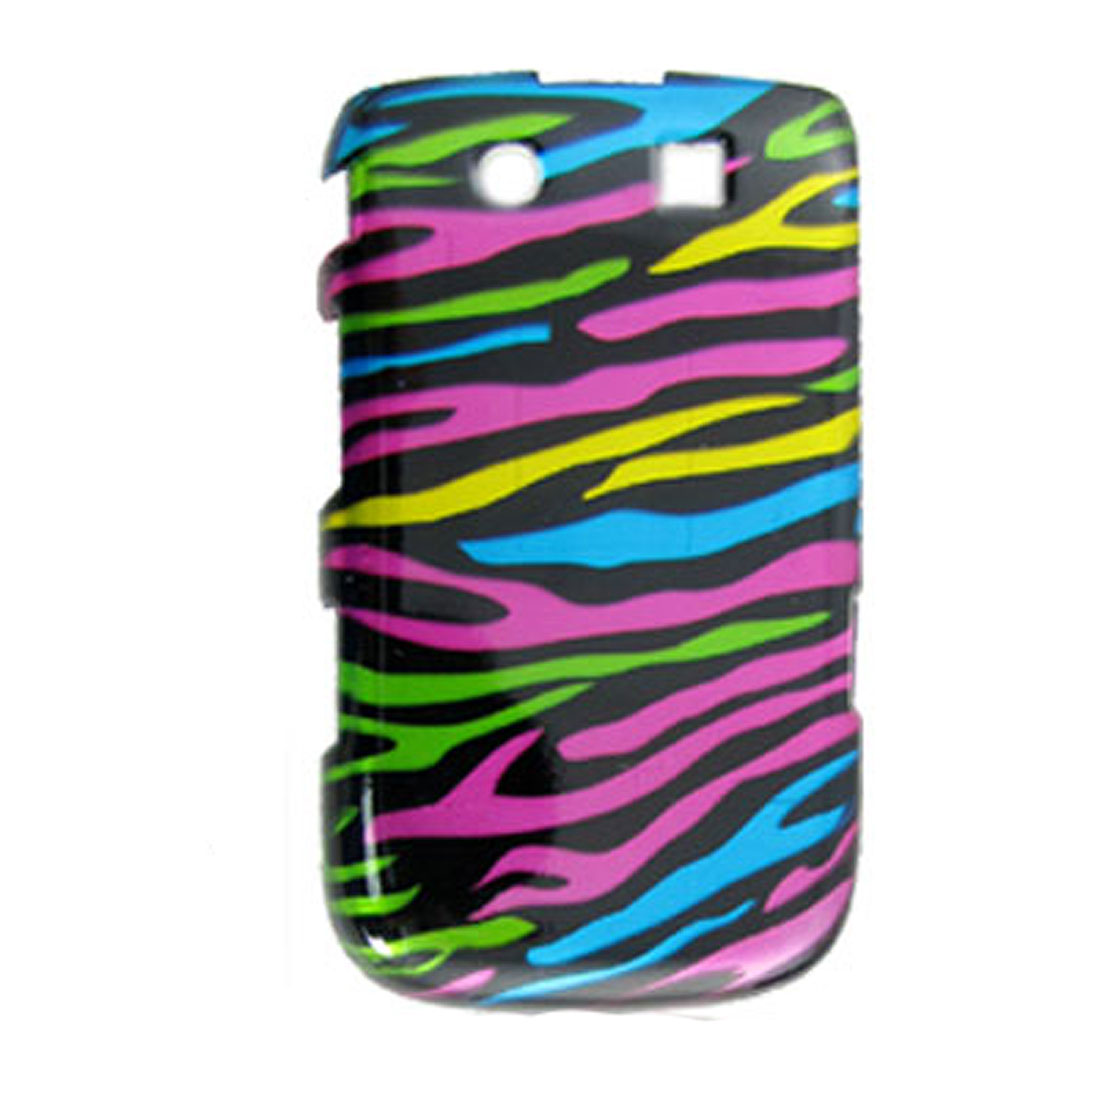 Colorful Zebra Print Plastic Case Guard for Blackberry Torch 9800